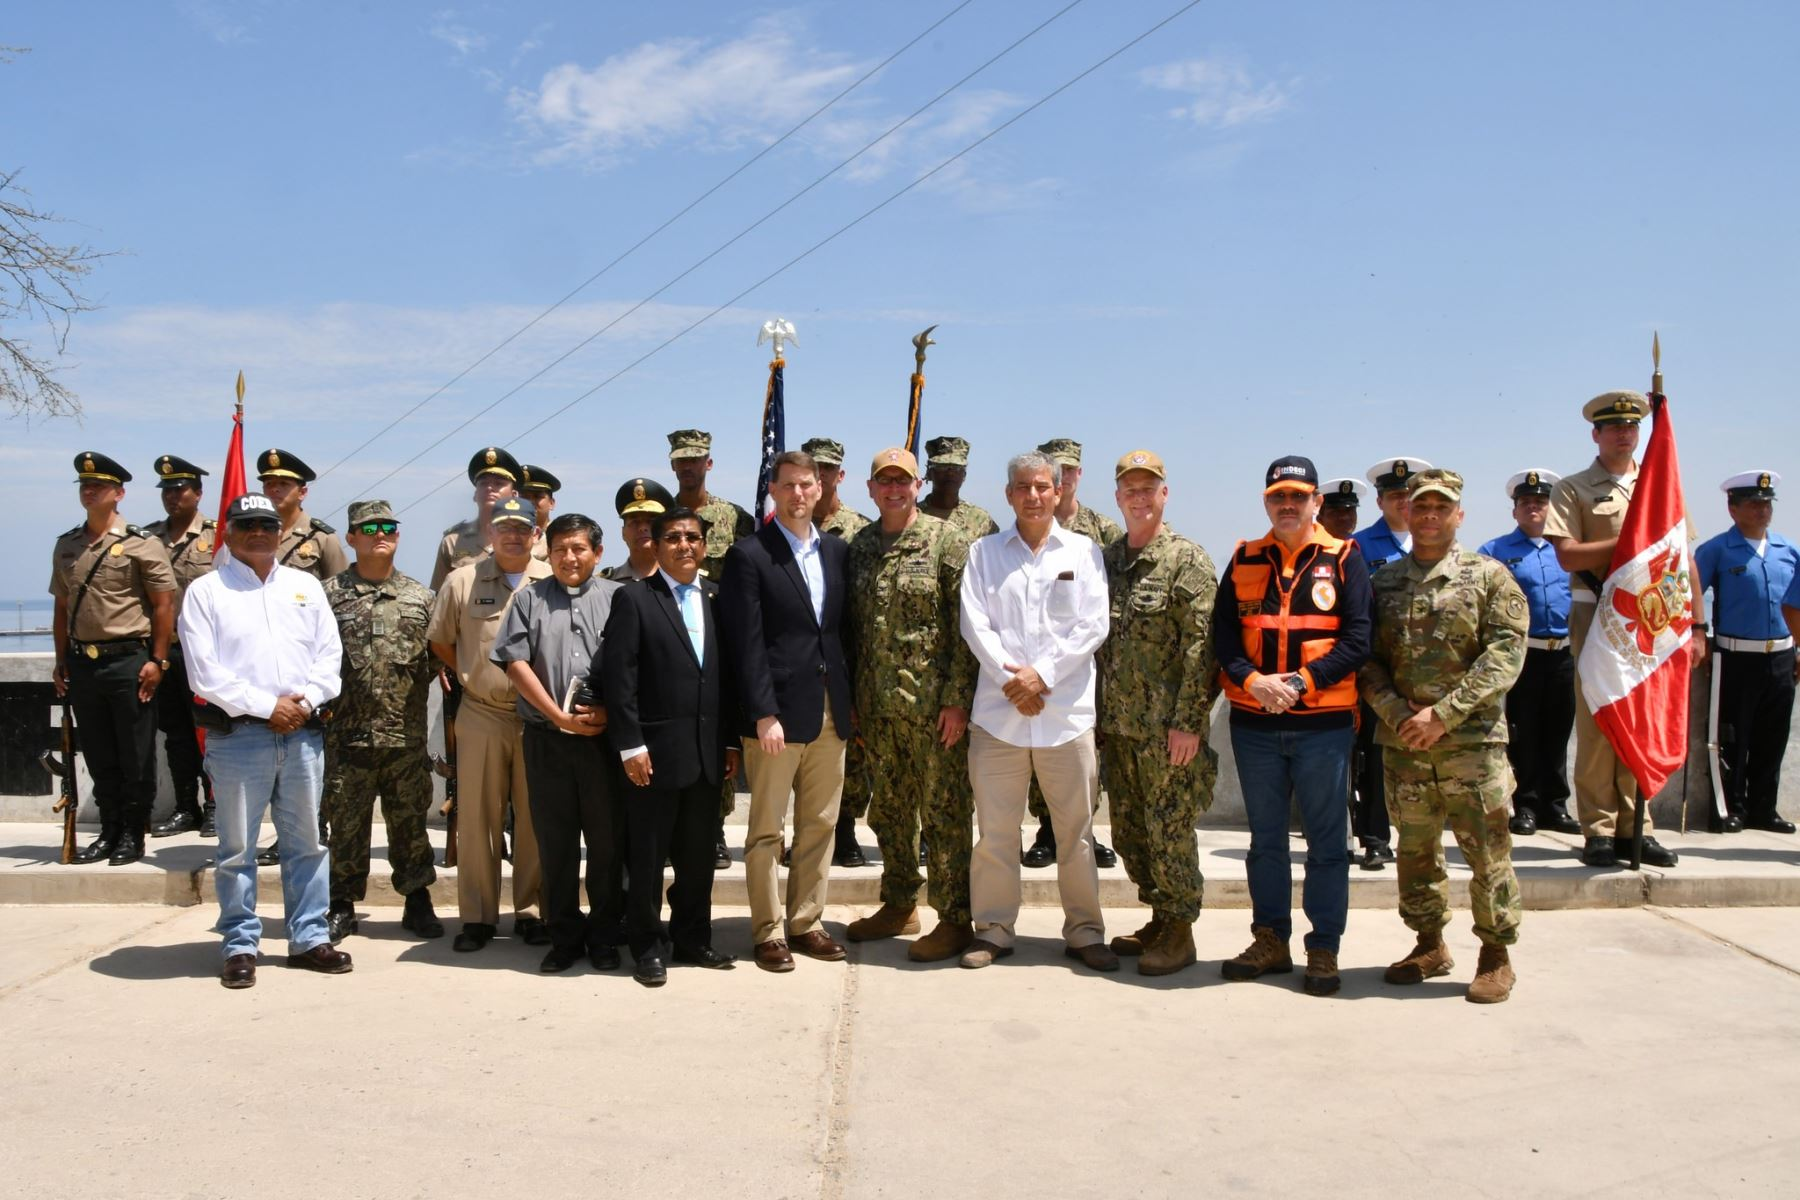 USNS Comfort carries out medical assistance mission in Peru